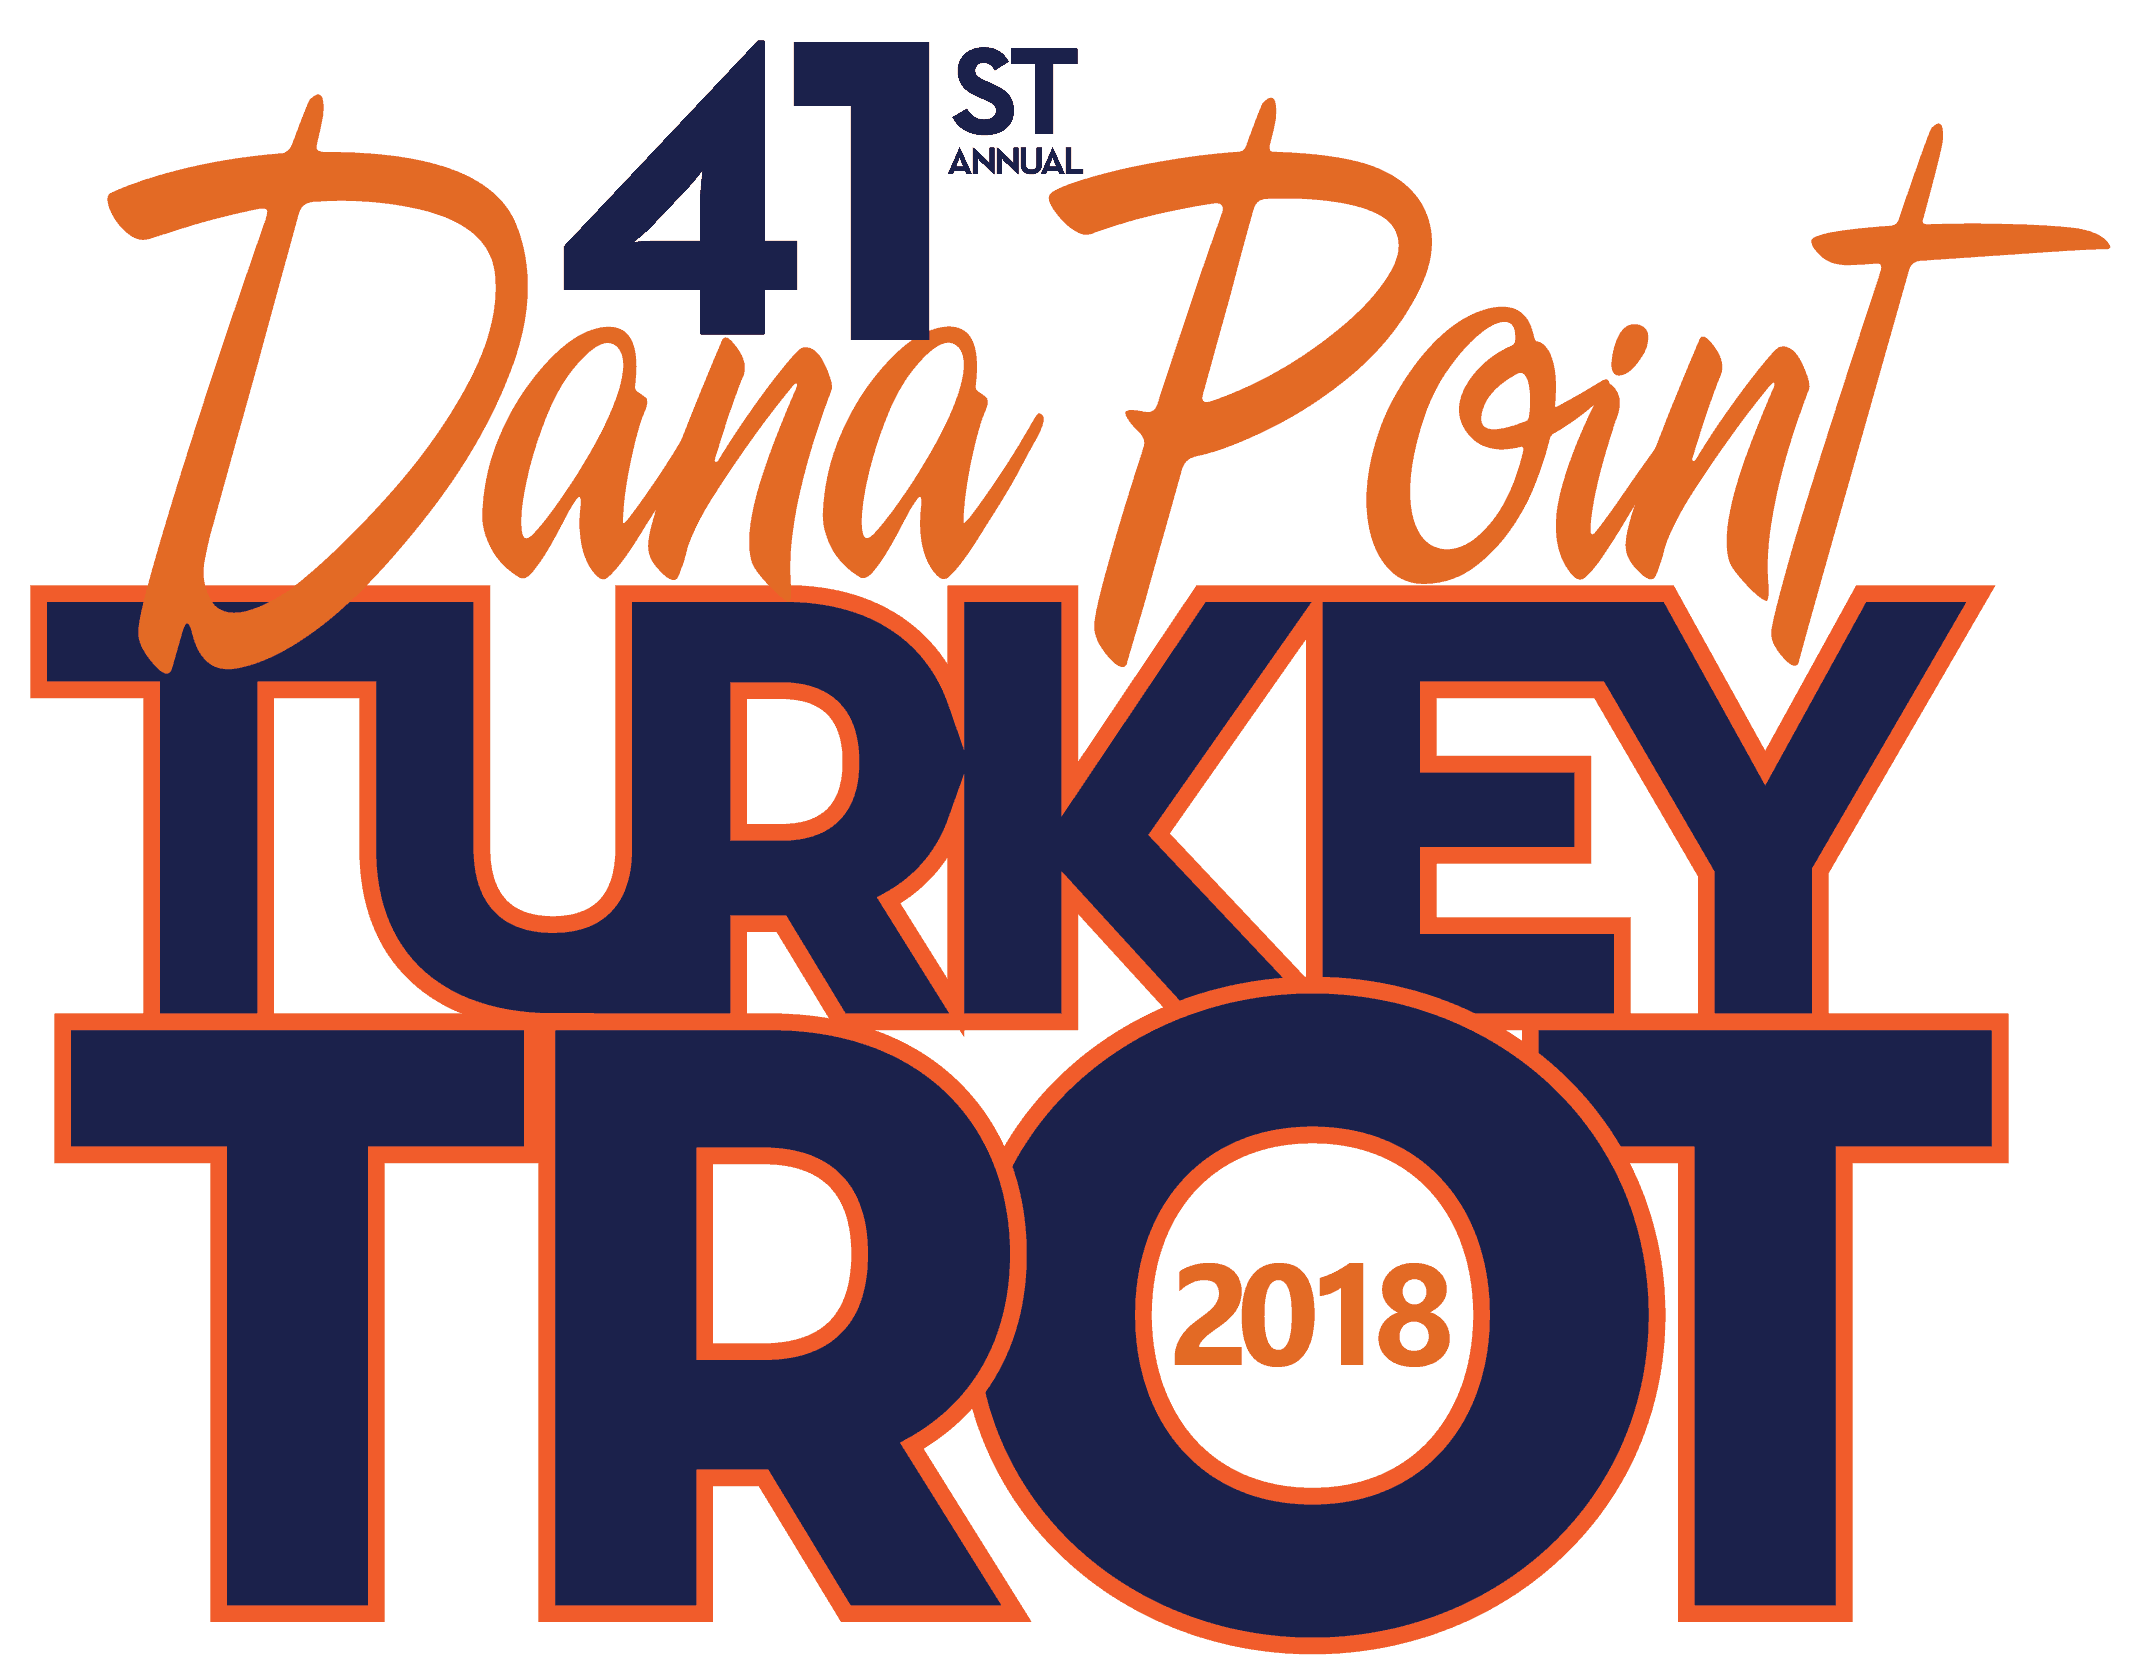 Turkey run clipart jpg download Dana Point Turkey Trot – Run the Race Before You Stuff Your Face! jpg download